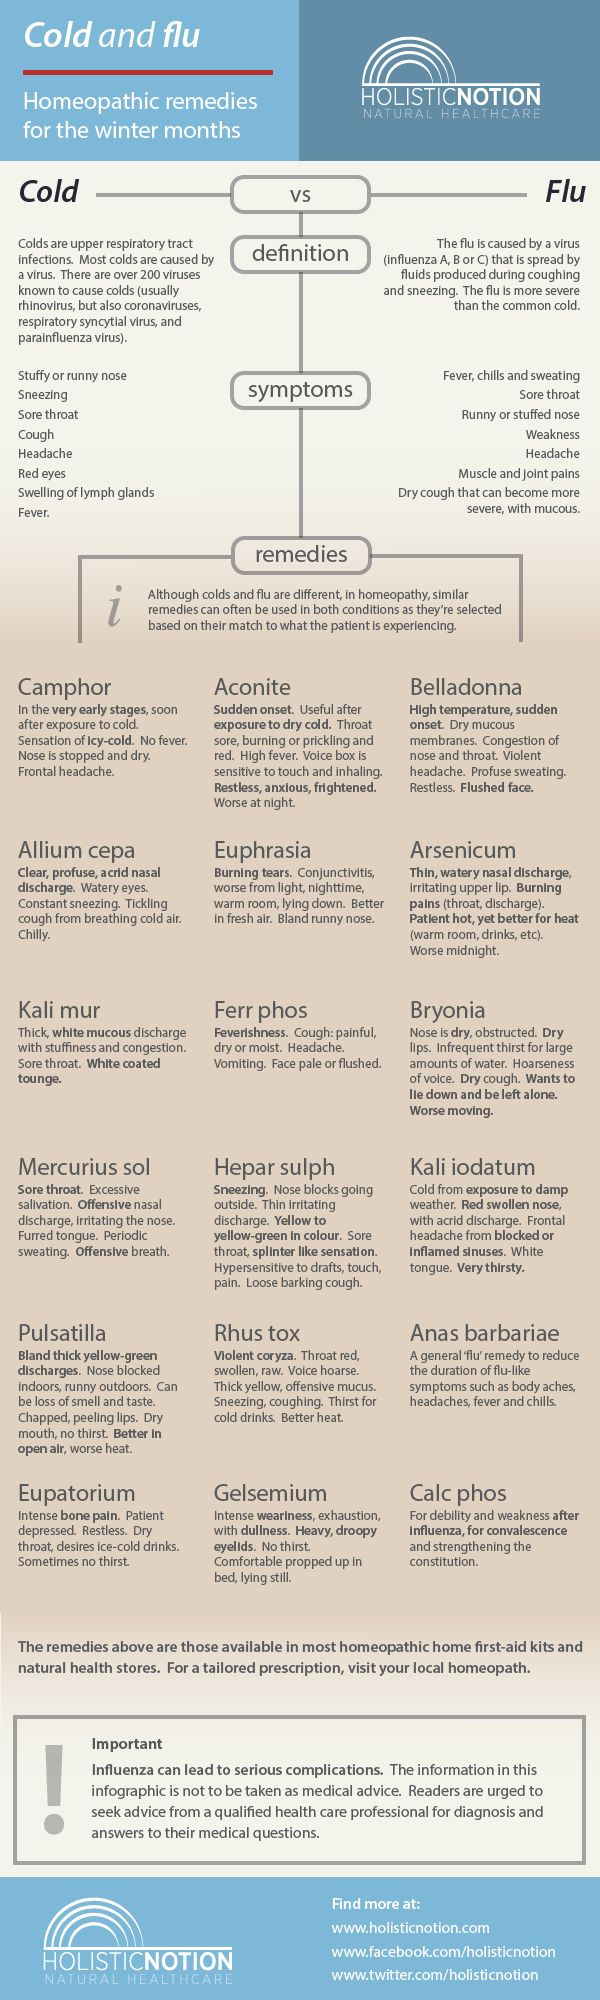 Infographic of the traditional homeopathic remedies for winter colds and flu. Homeopathic cold and flu remedies for the winter months Related